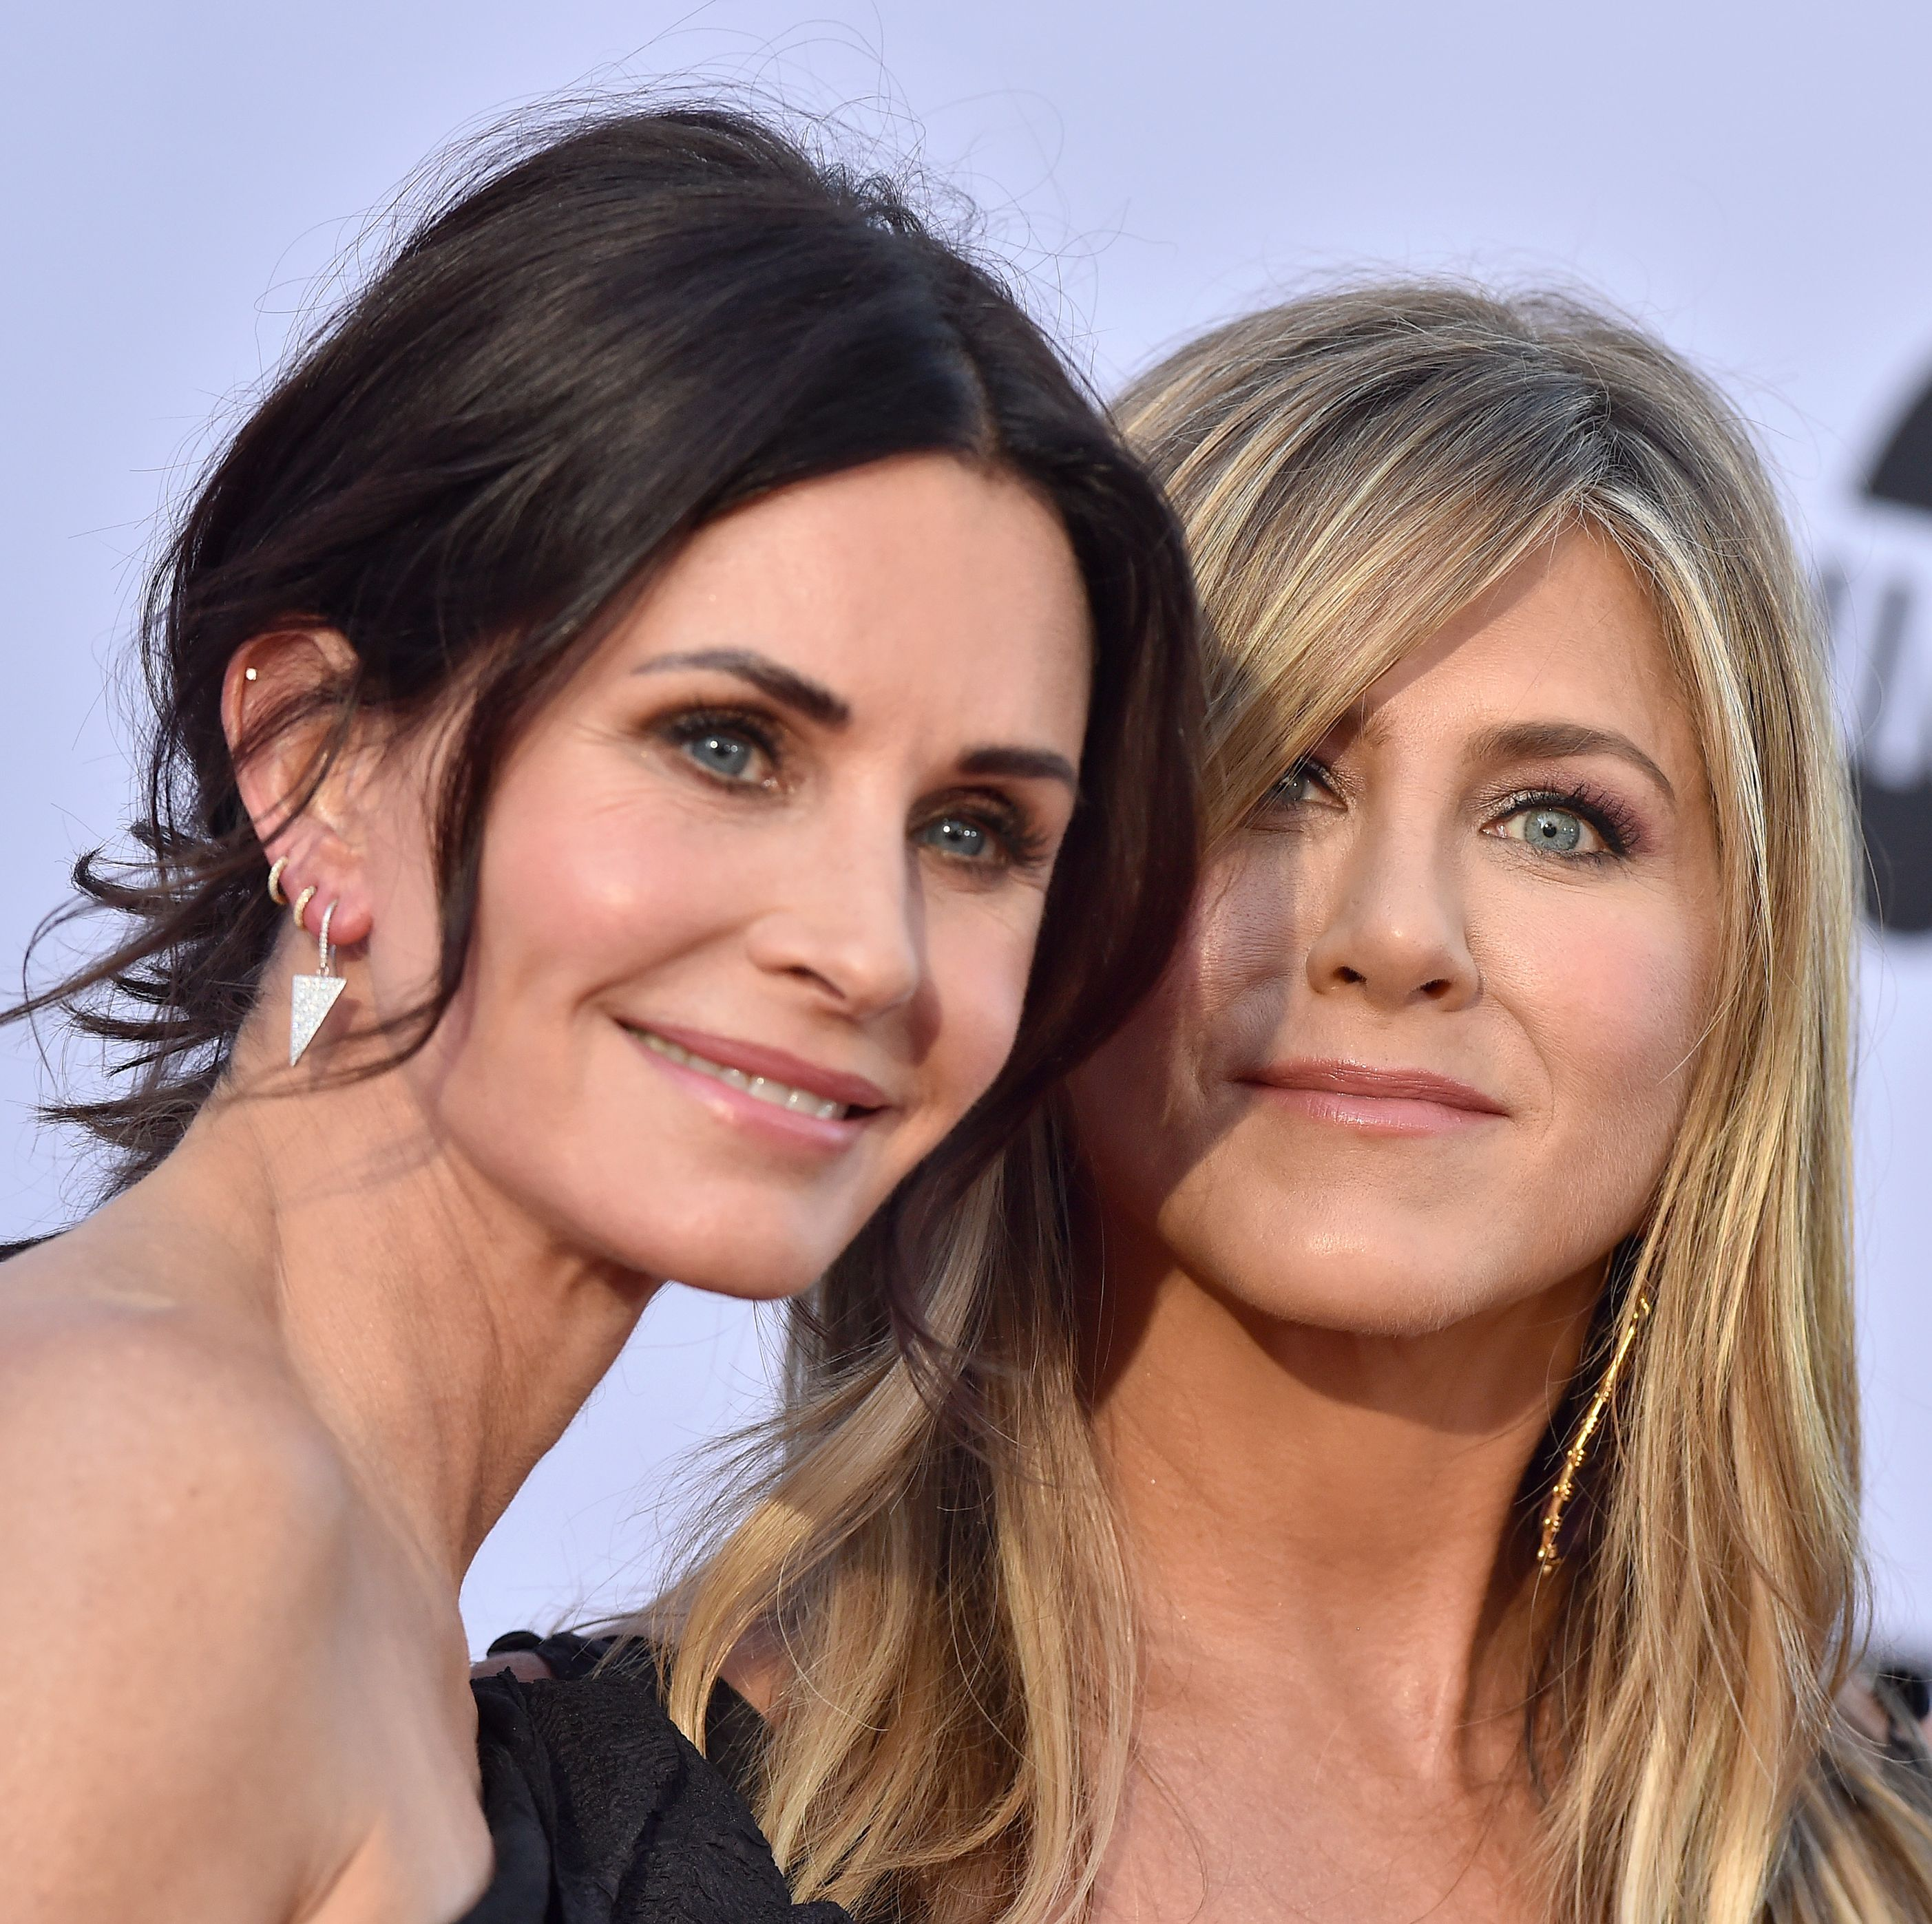 'Friends' Stars Jennifer Aniston and Courteney Cox's Flight Was Forced to Make an Emergency Landing